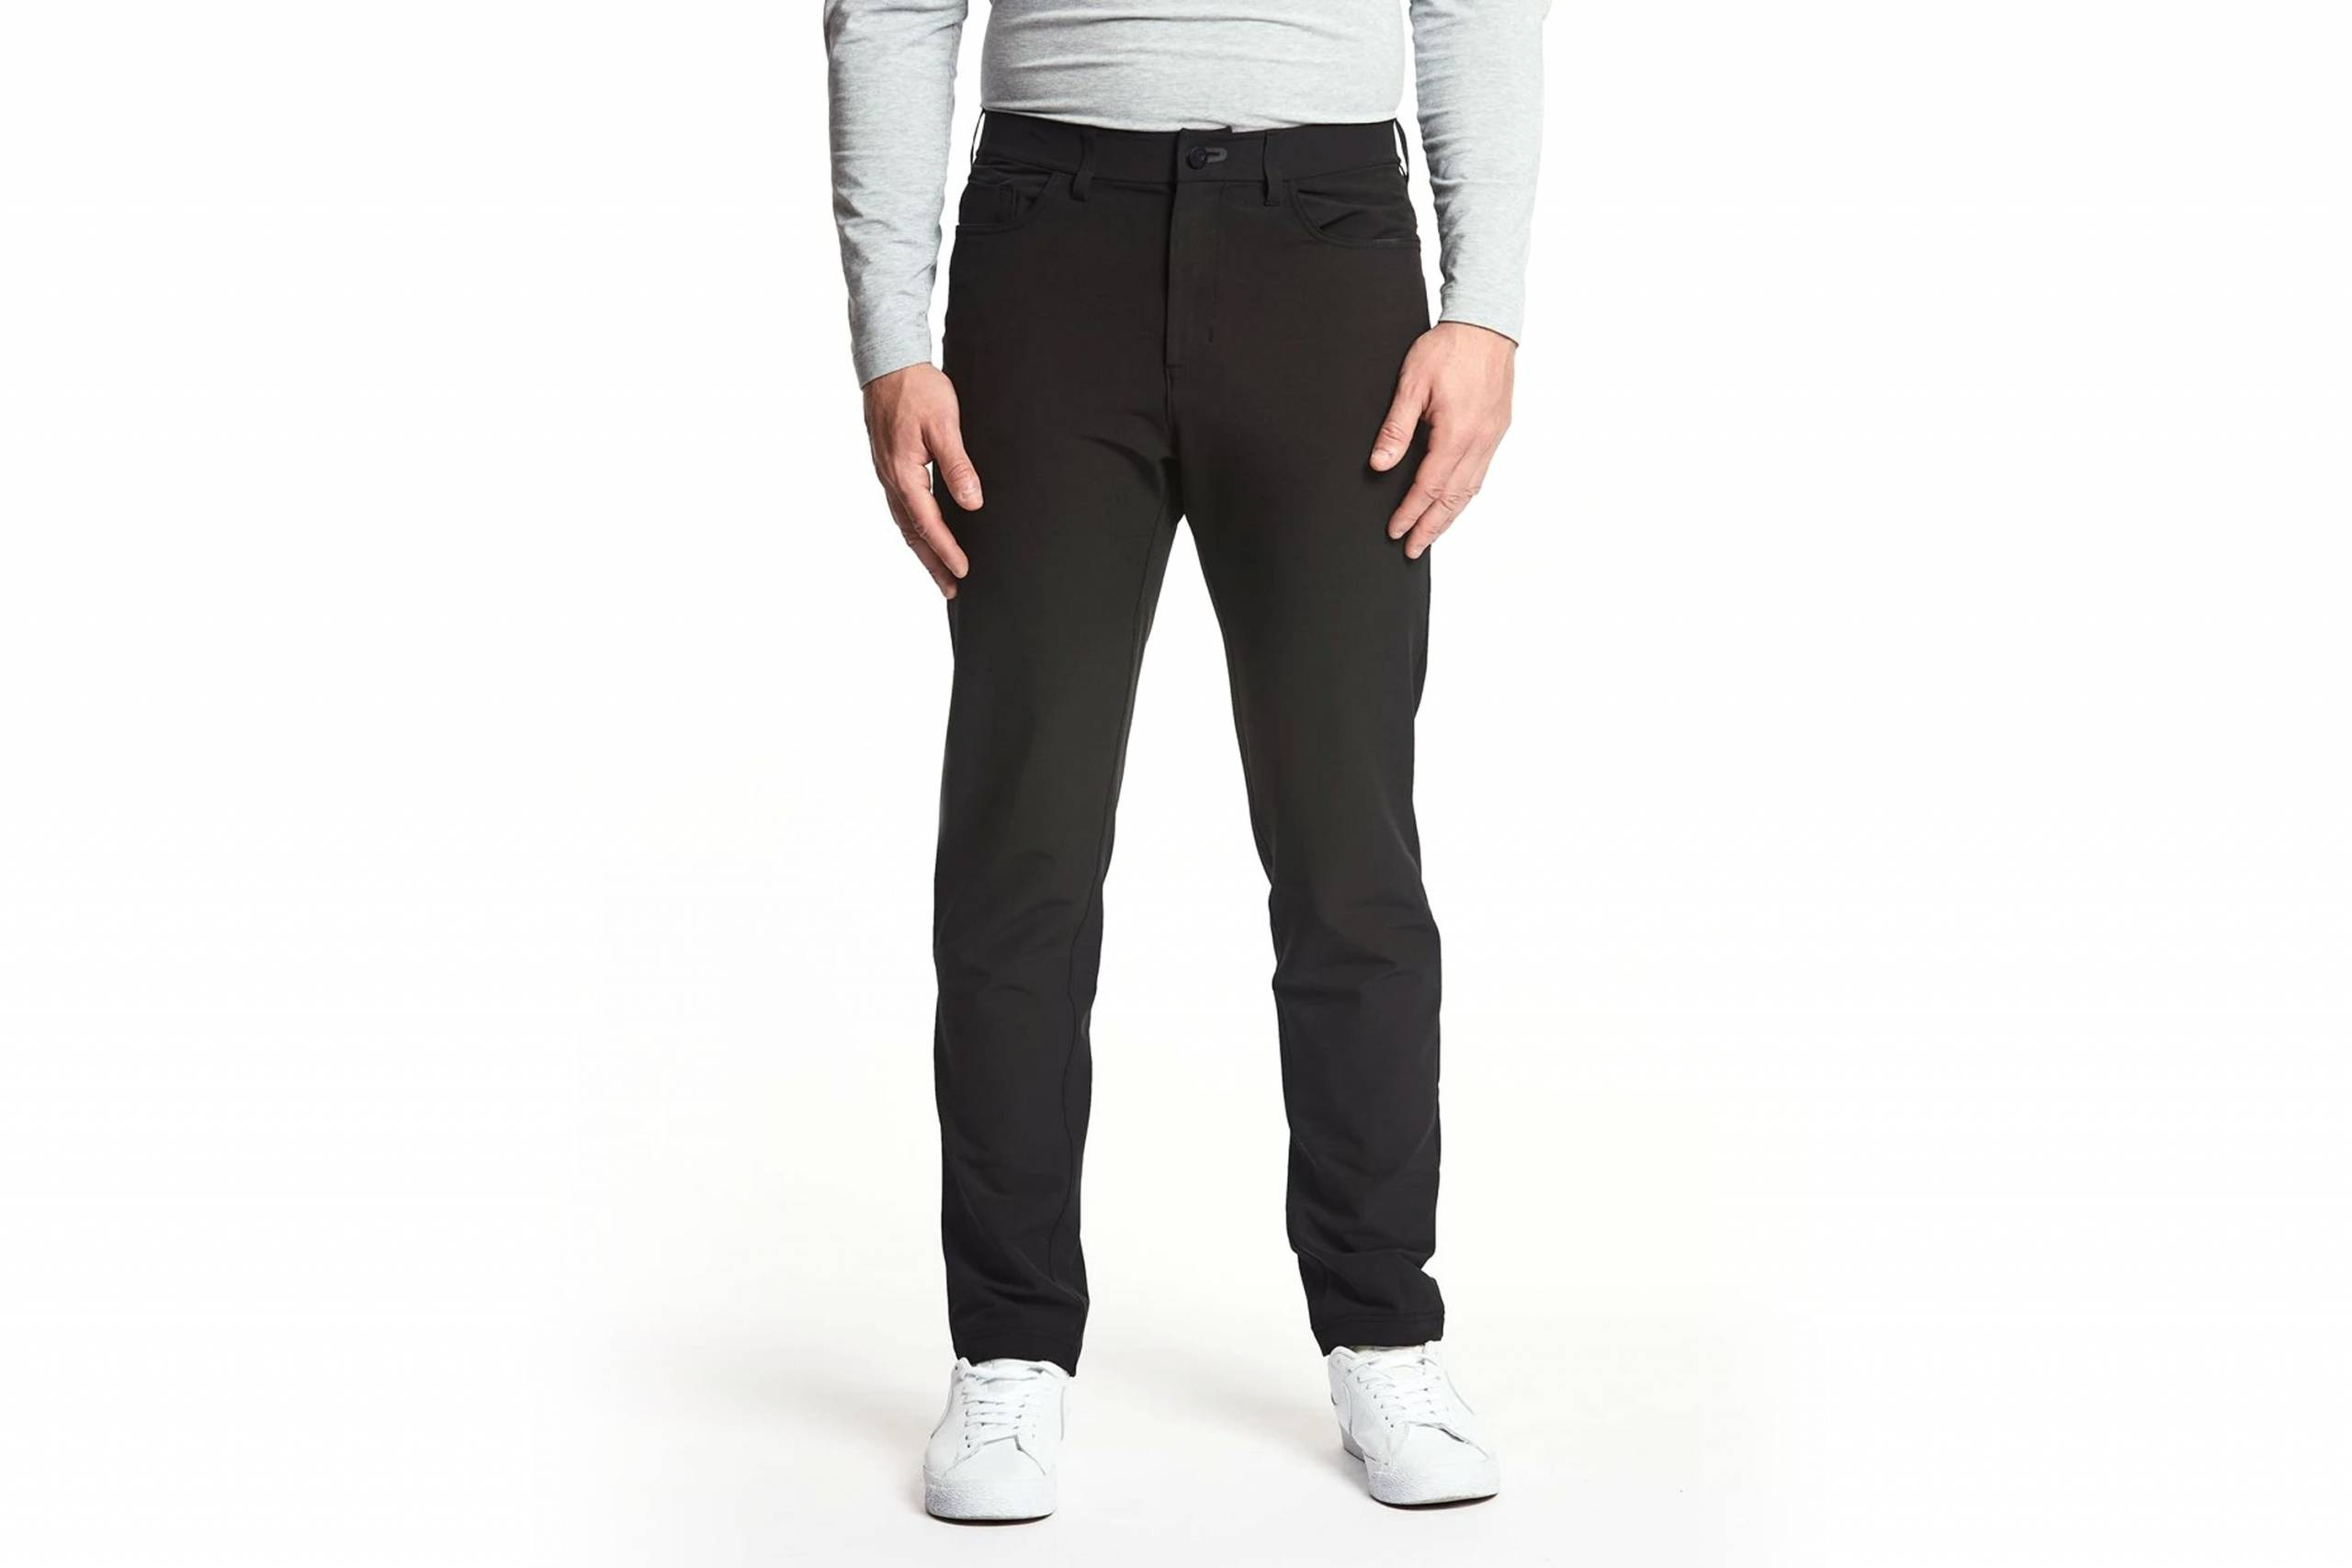 Pulbic rec workday pants